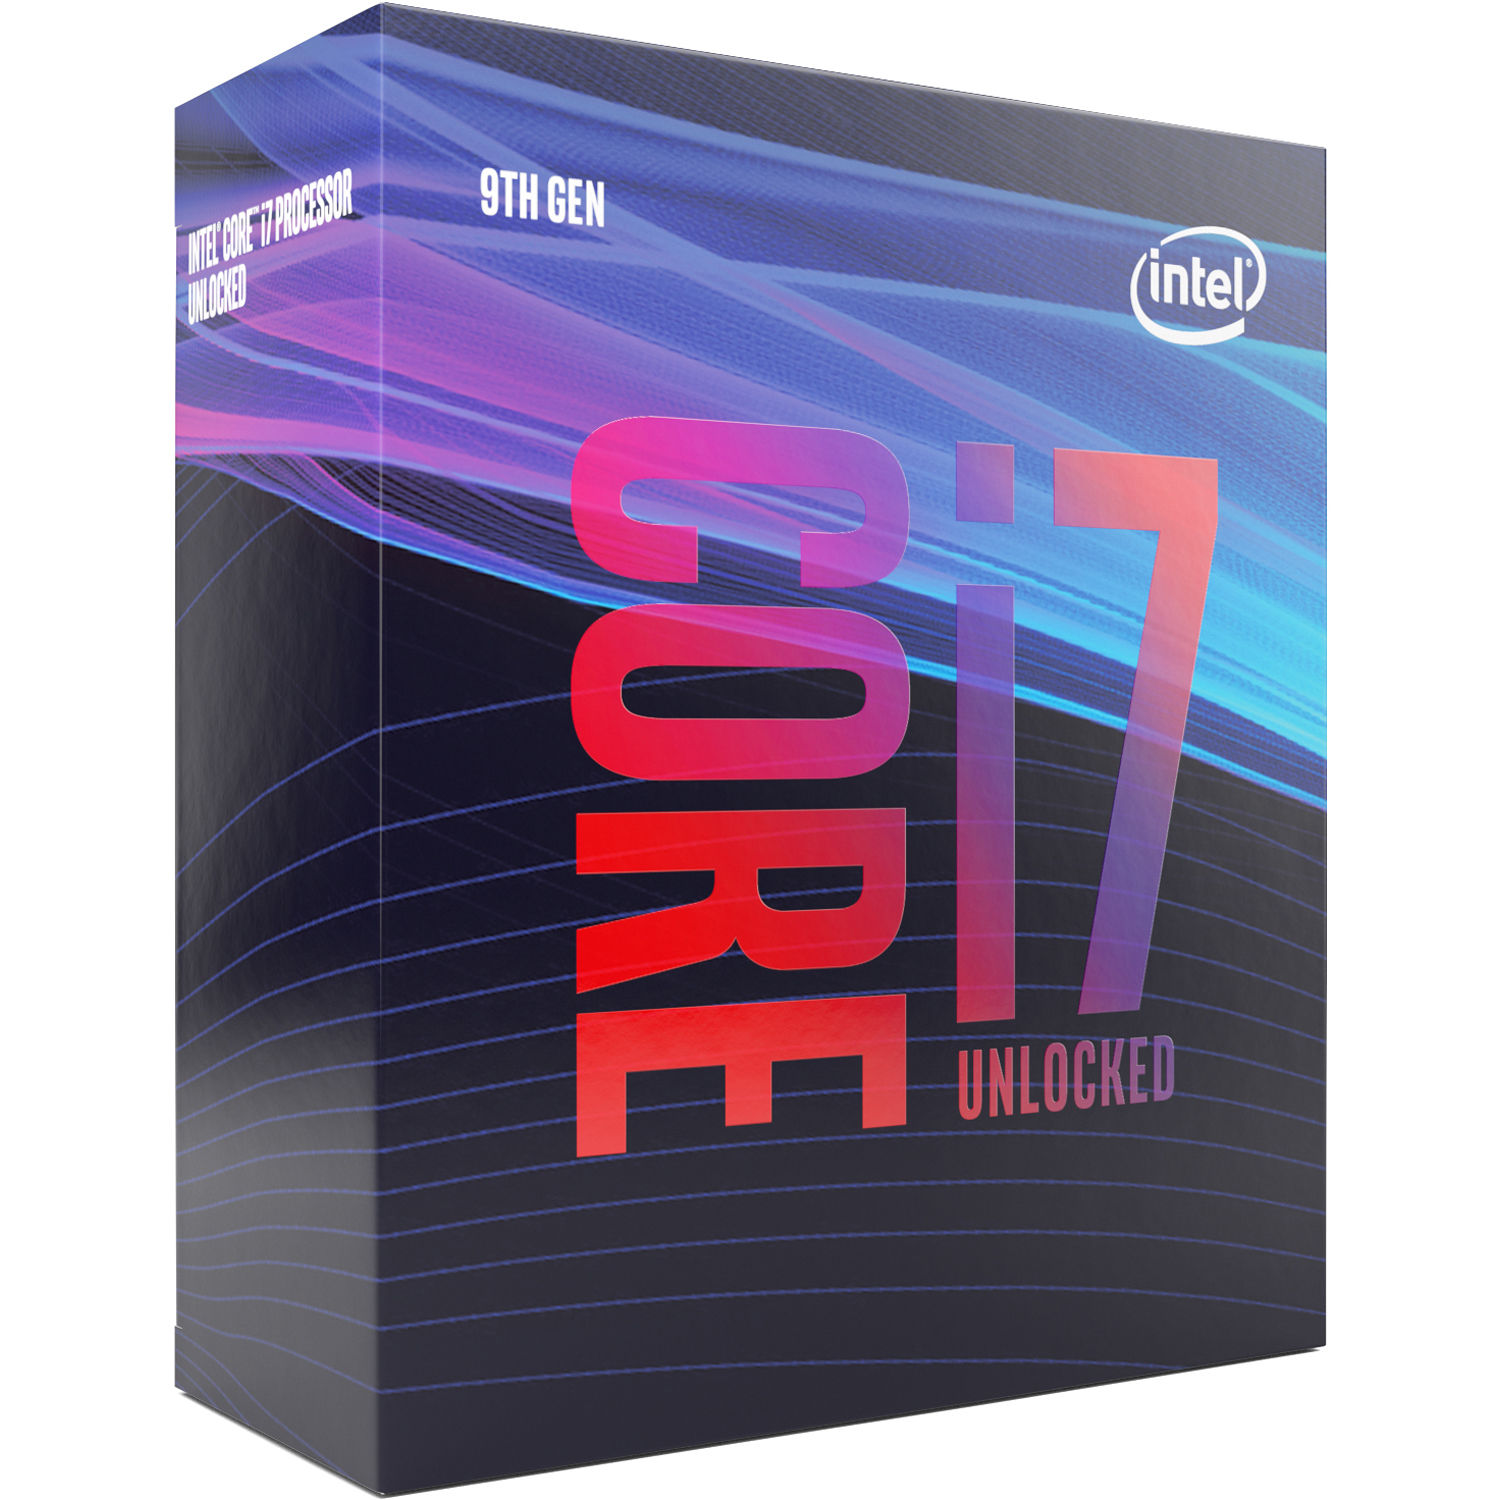 Intel cpu core i7-9700k 3.6ghz 12mb cache lga 1151_9700k